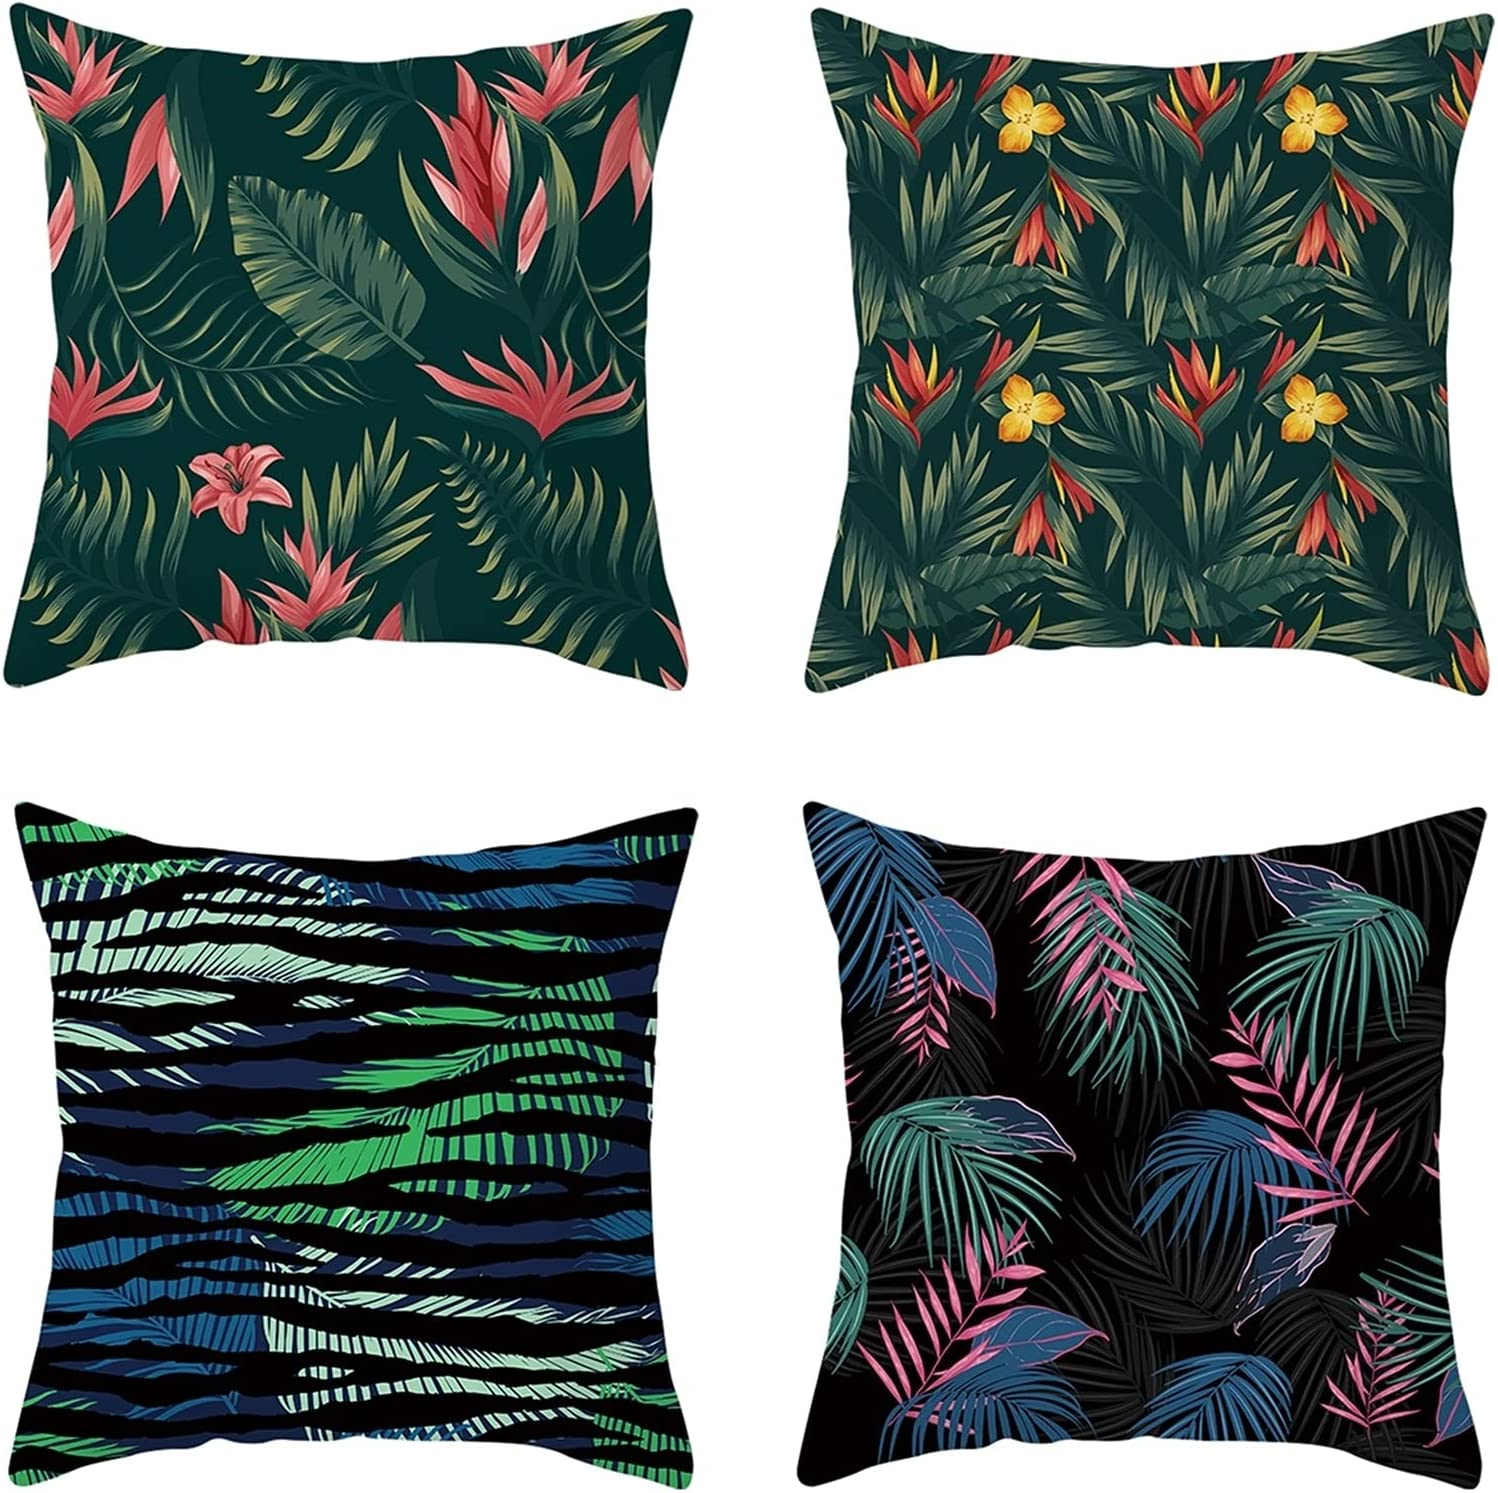 Daesar Throw Pillow Covers for Pack 4 Kids Challenge the lowest price of Japan ☆ Max 73% OFF B Cases